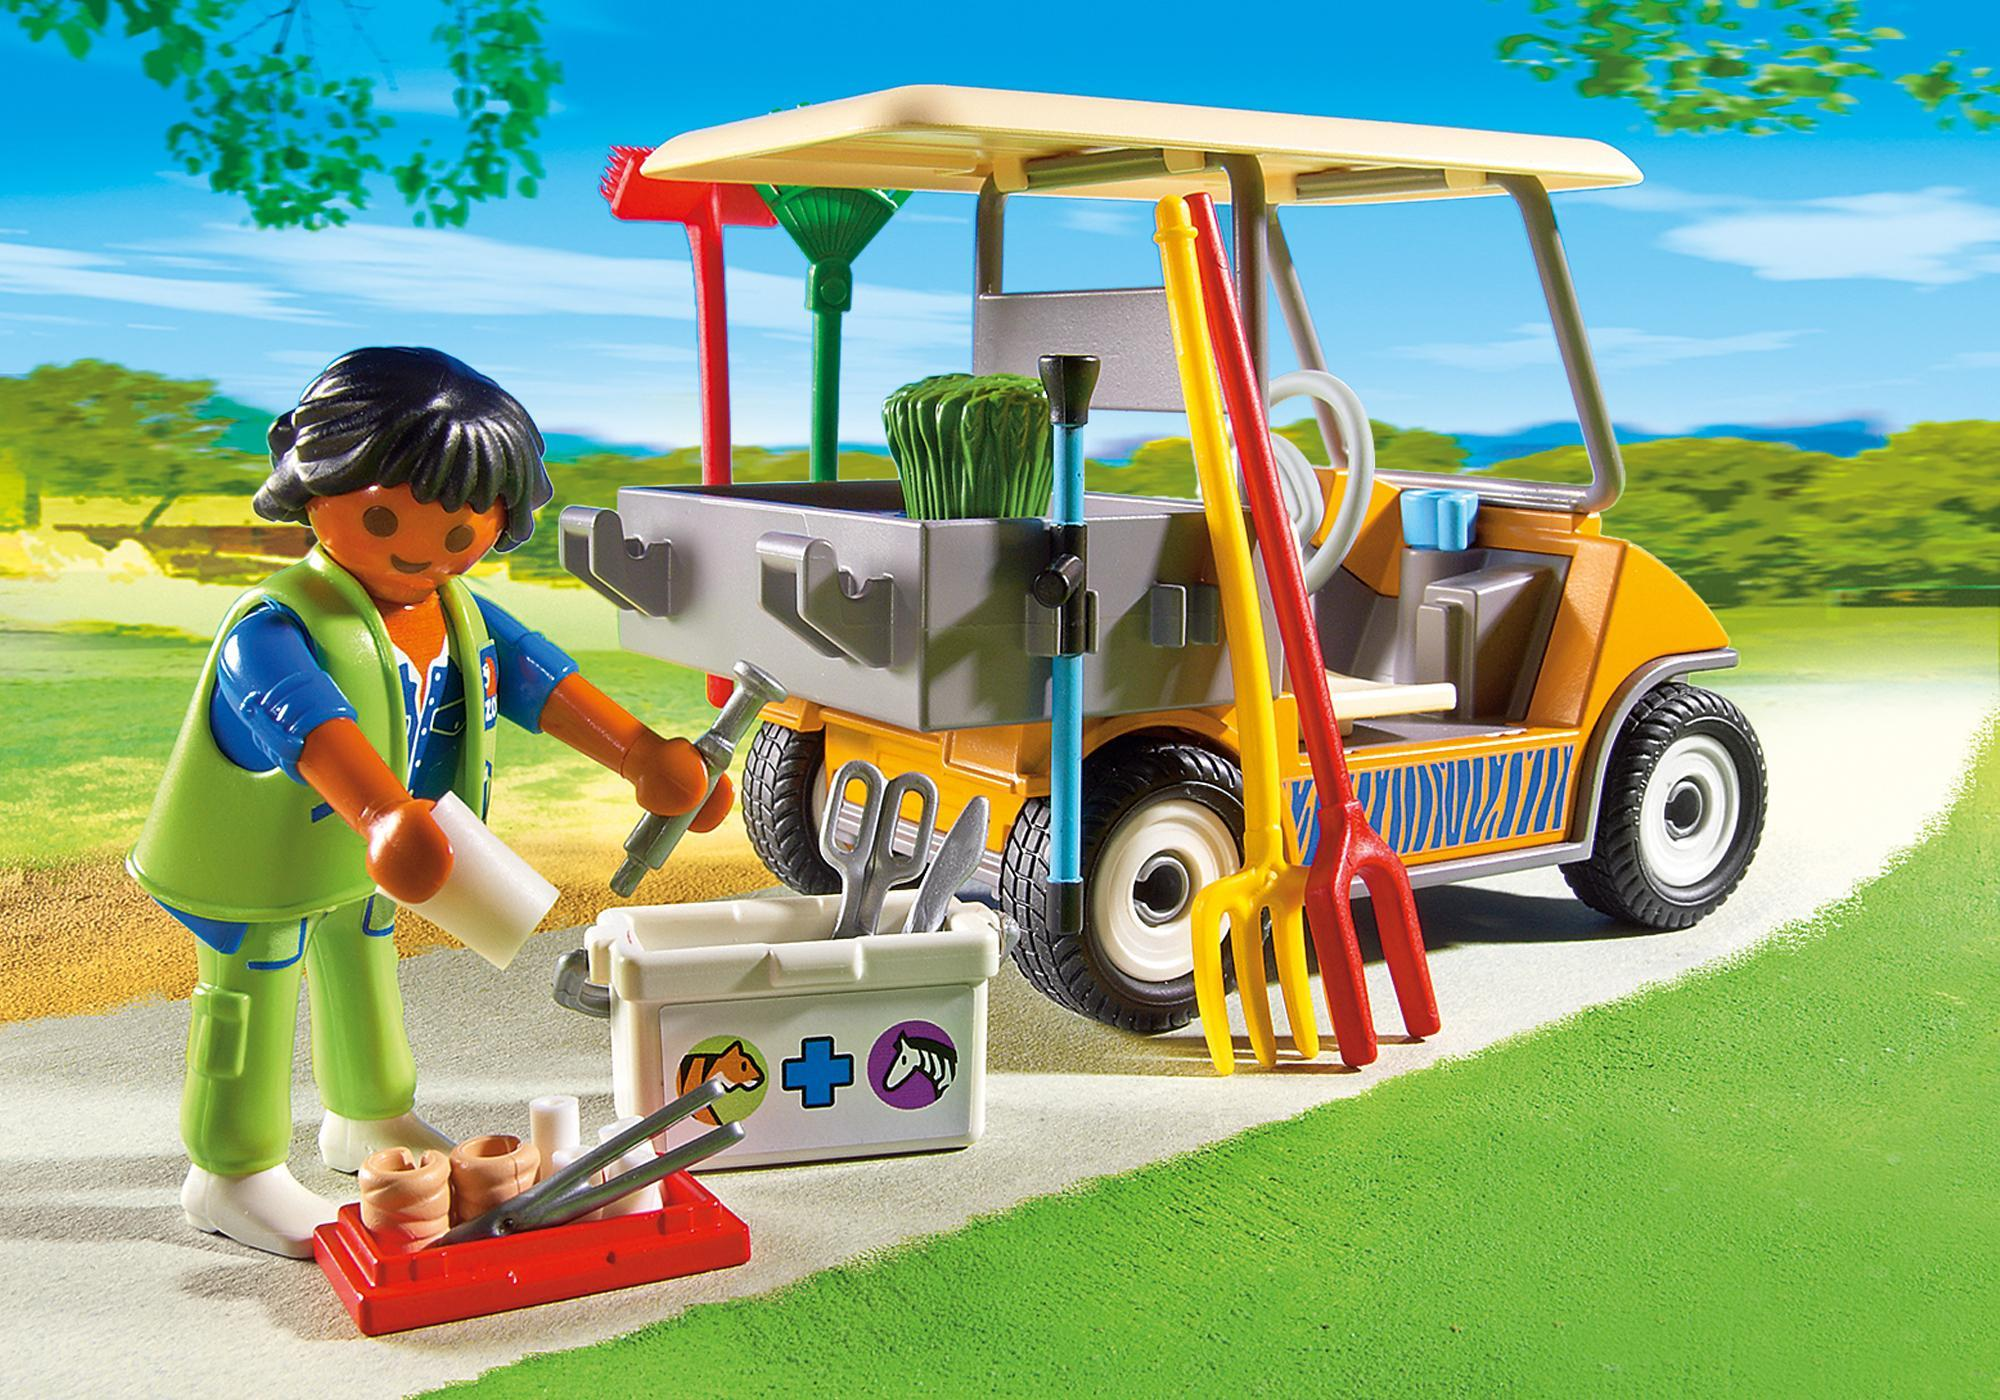 http://media.playmobil.com/i/playmobil/6636_product_extra1/Carrito de Zoo